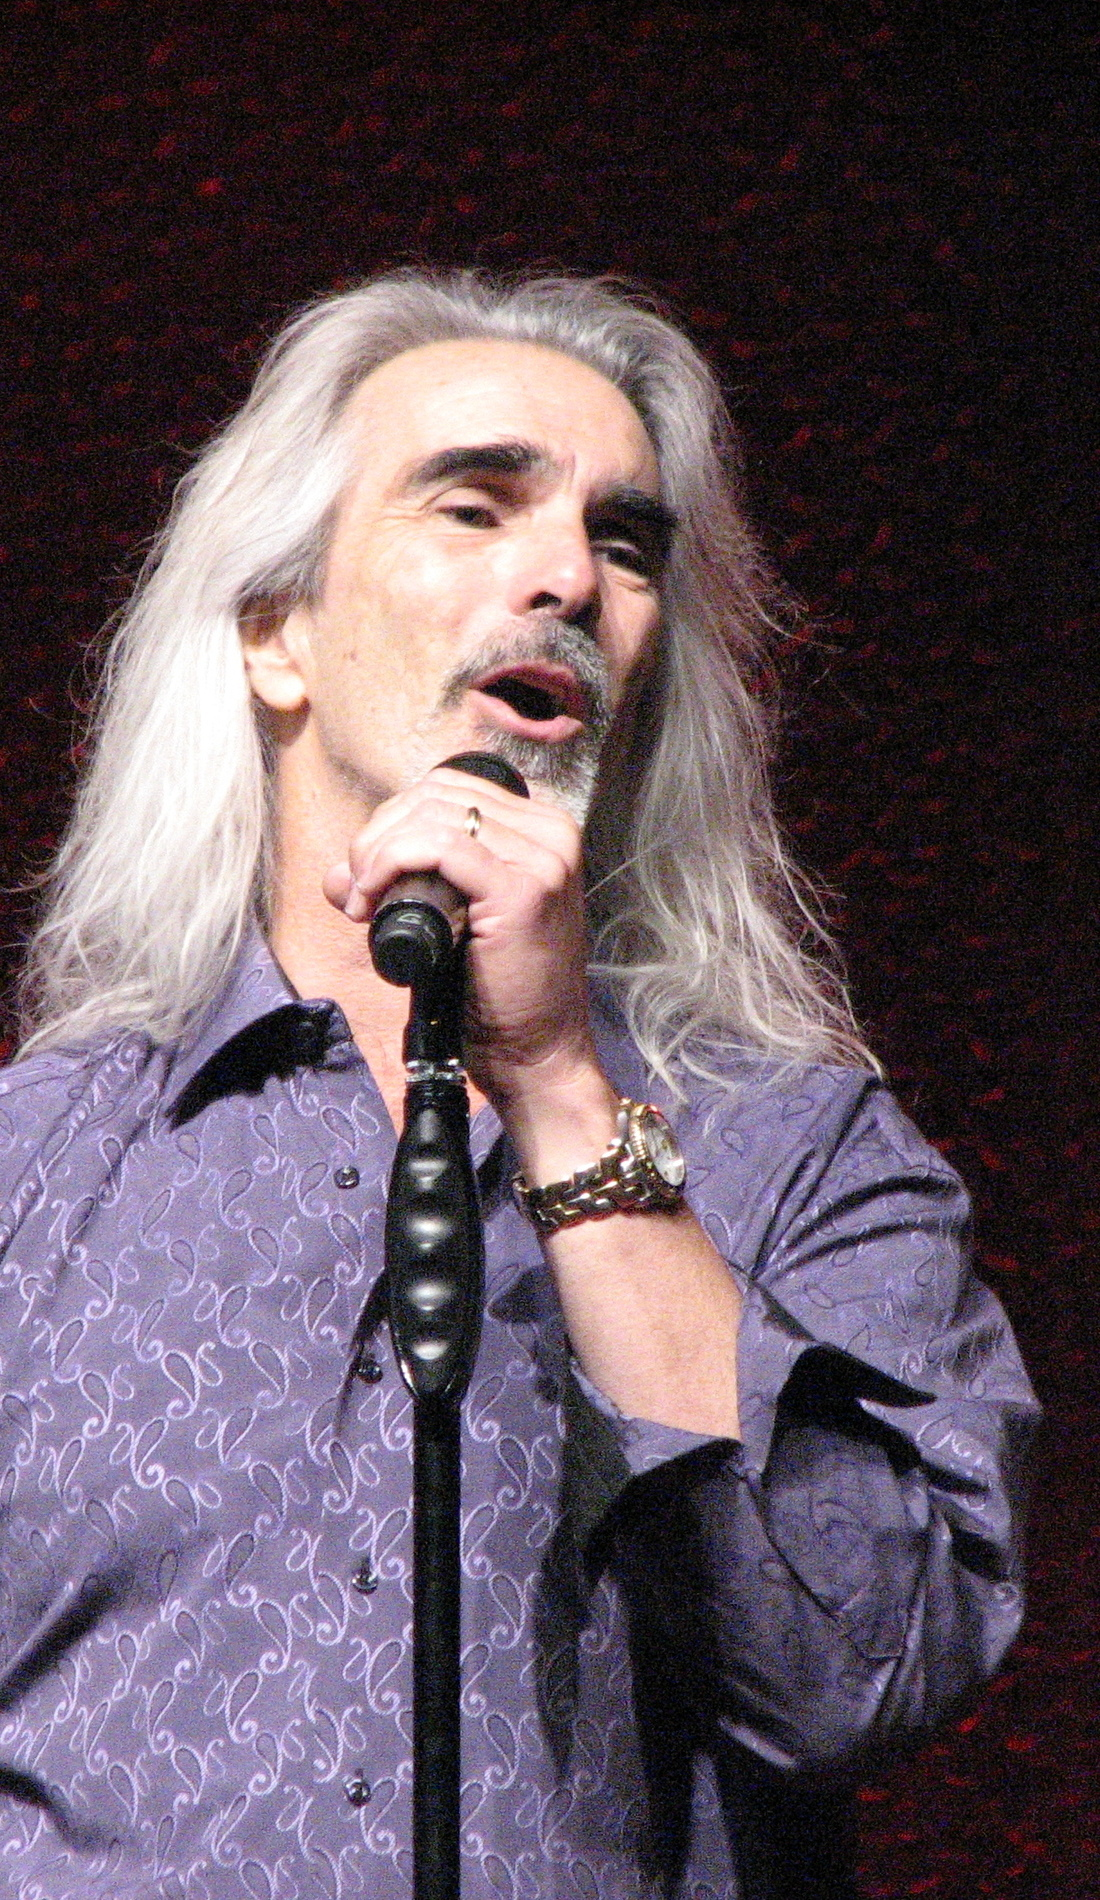 A Guy Penrod live event